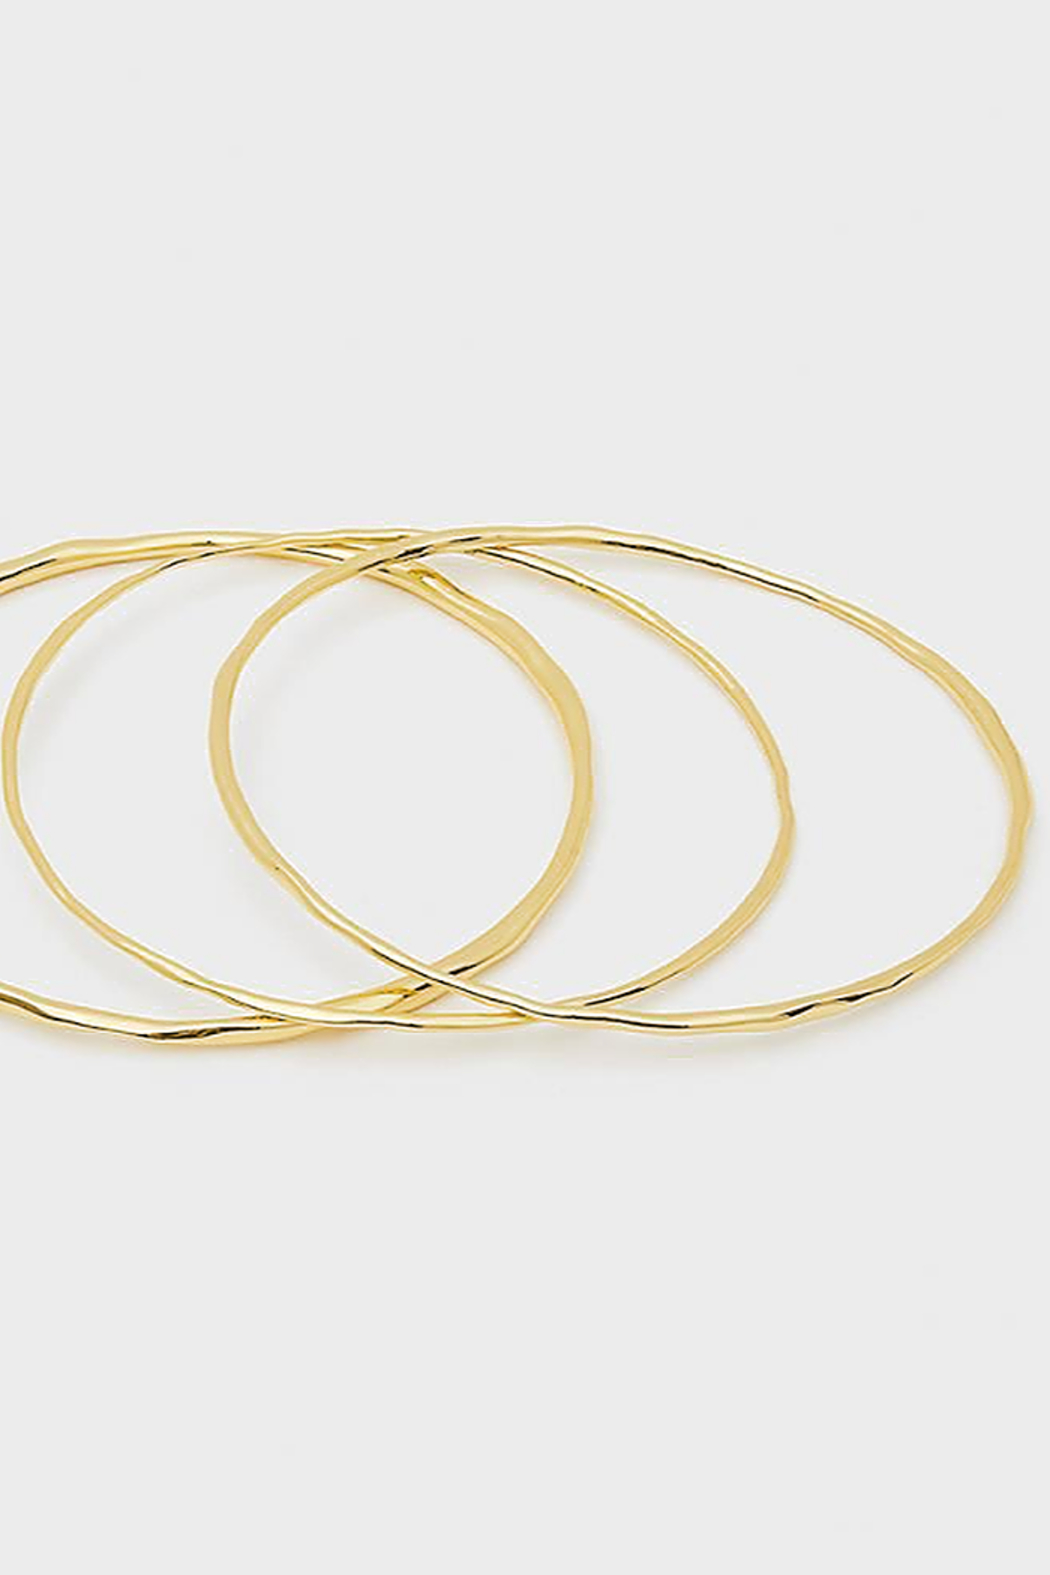 Gorjana Quinn Delicate Bangle Set - Main Image